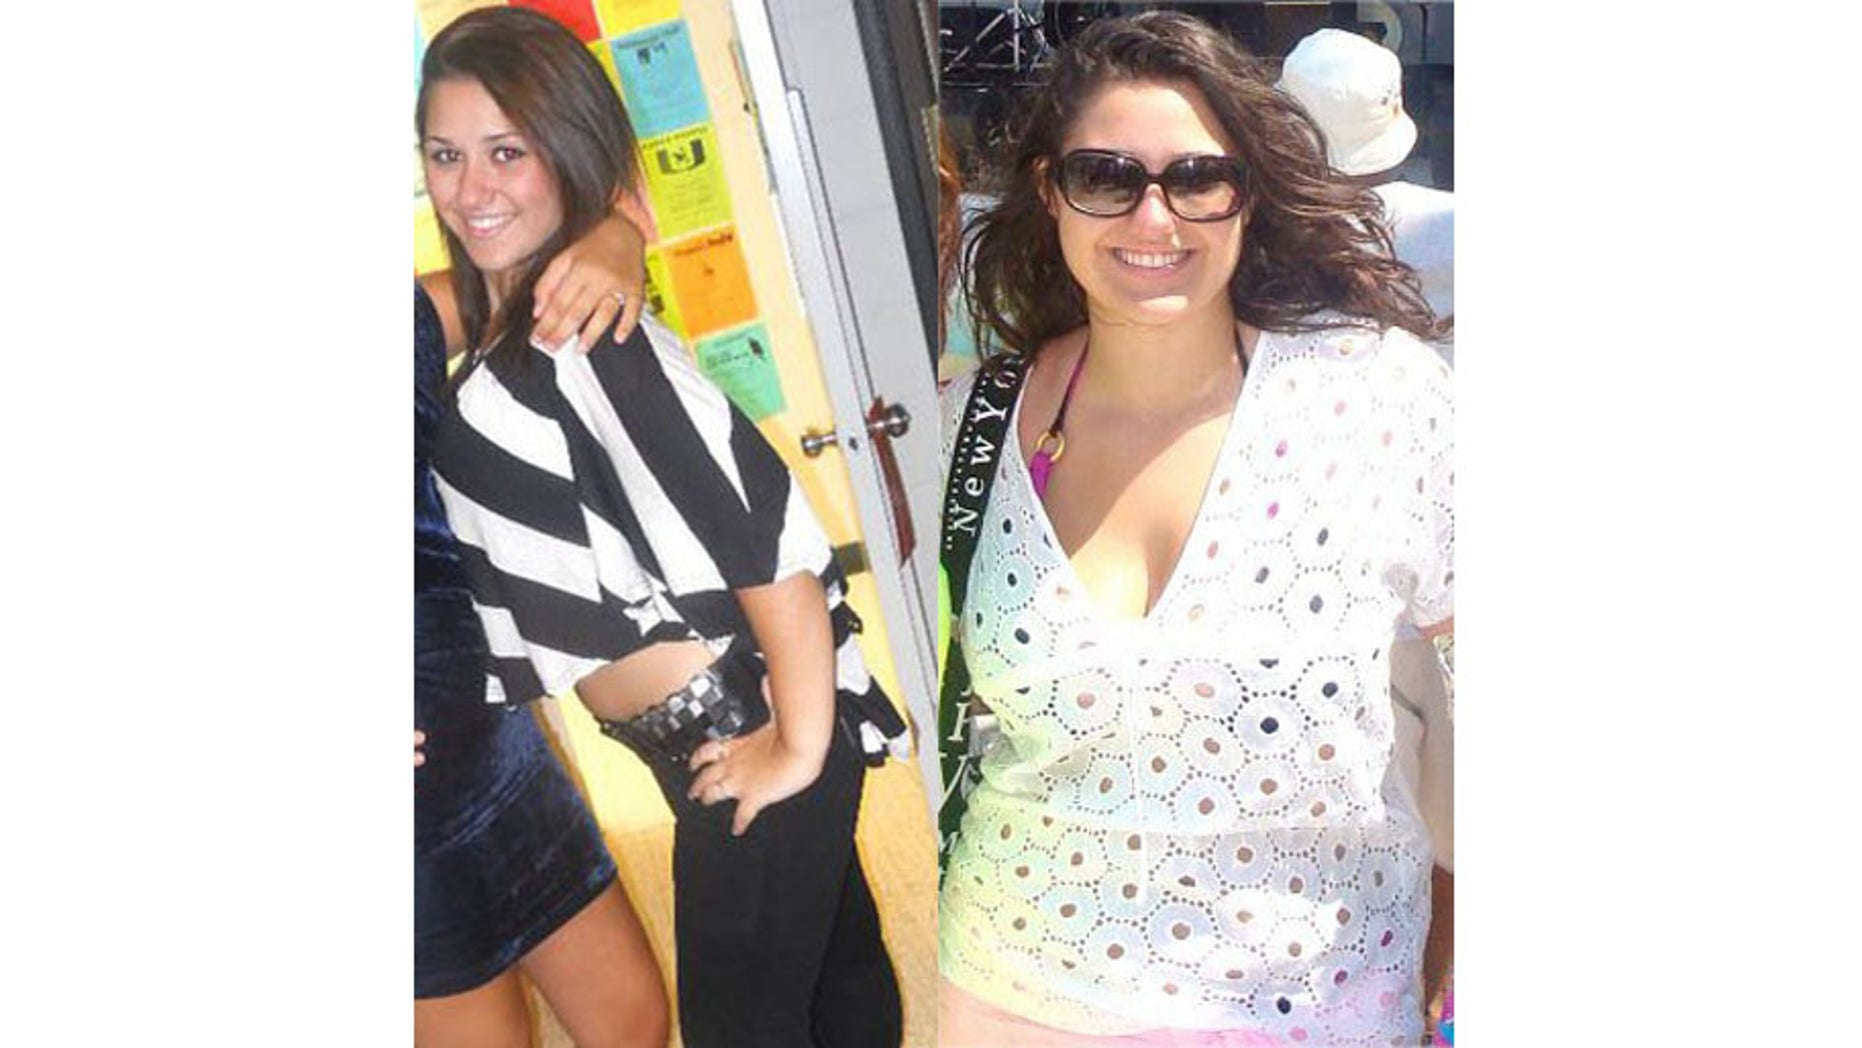 Left: August 2011, 155 LBS Right: May 2012, 206 LBS